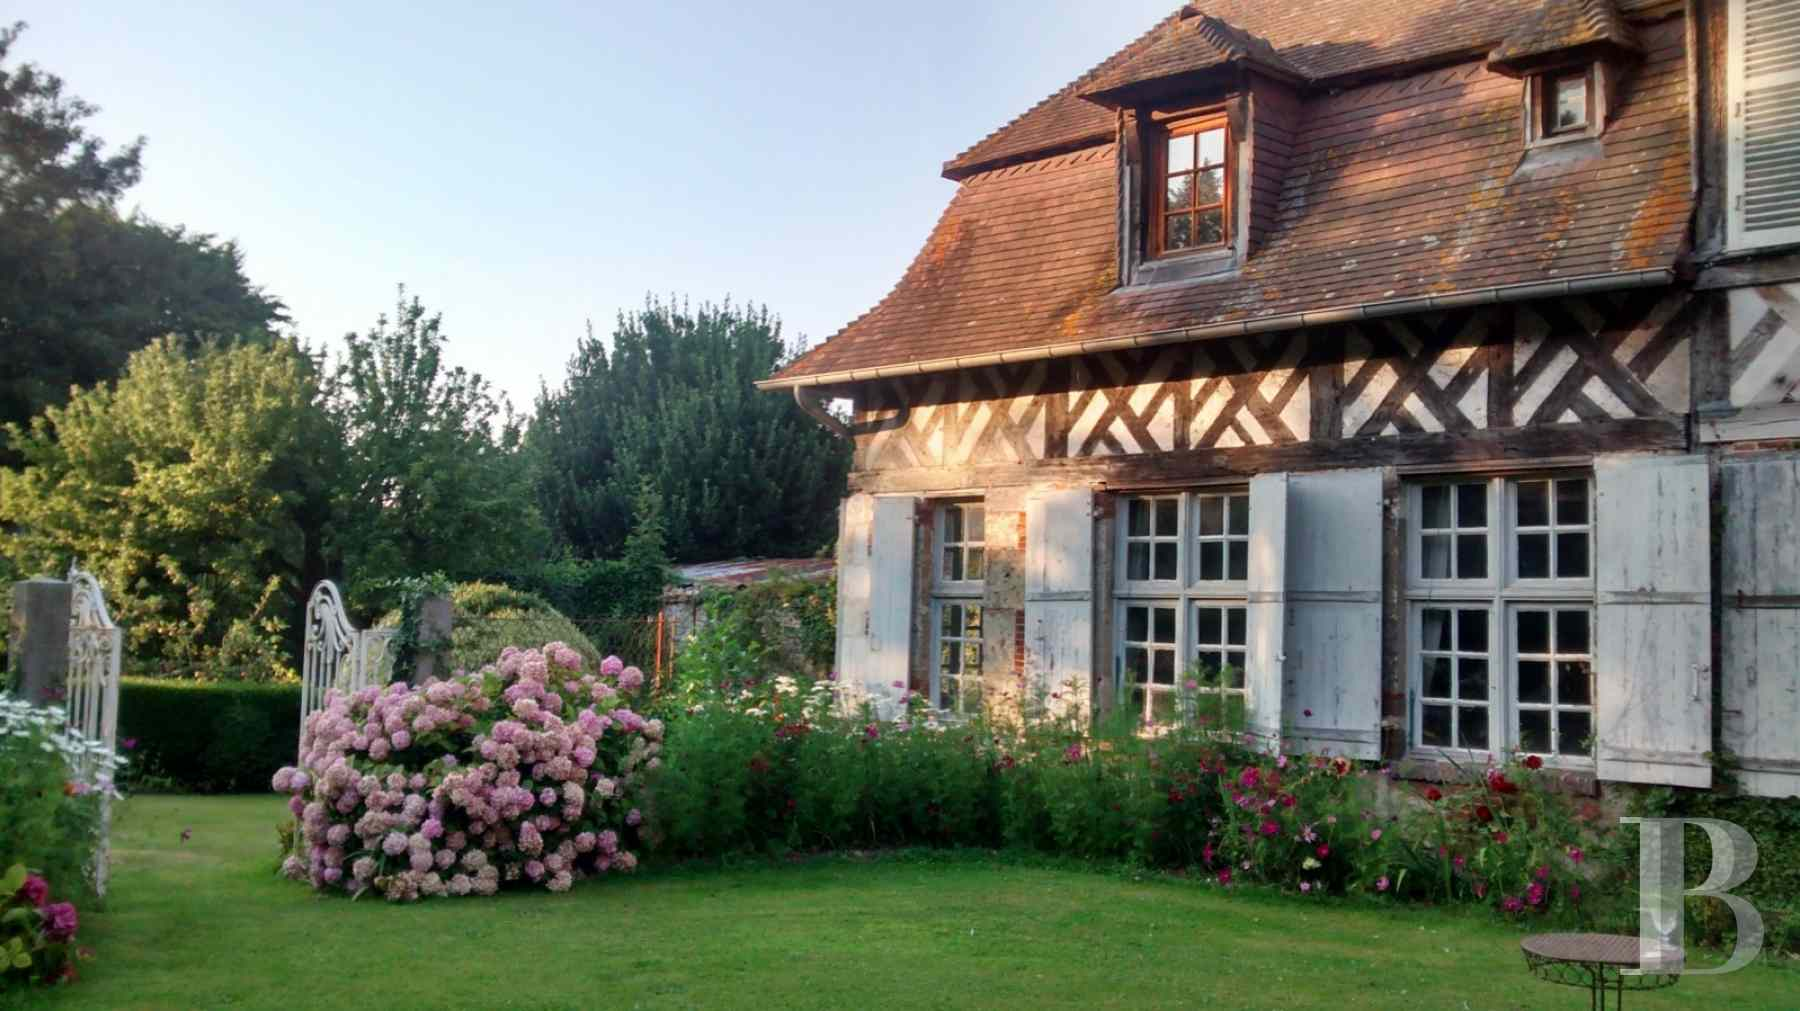 France mansions for sale lower normandy deauville 16 - 18 zoom